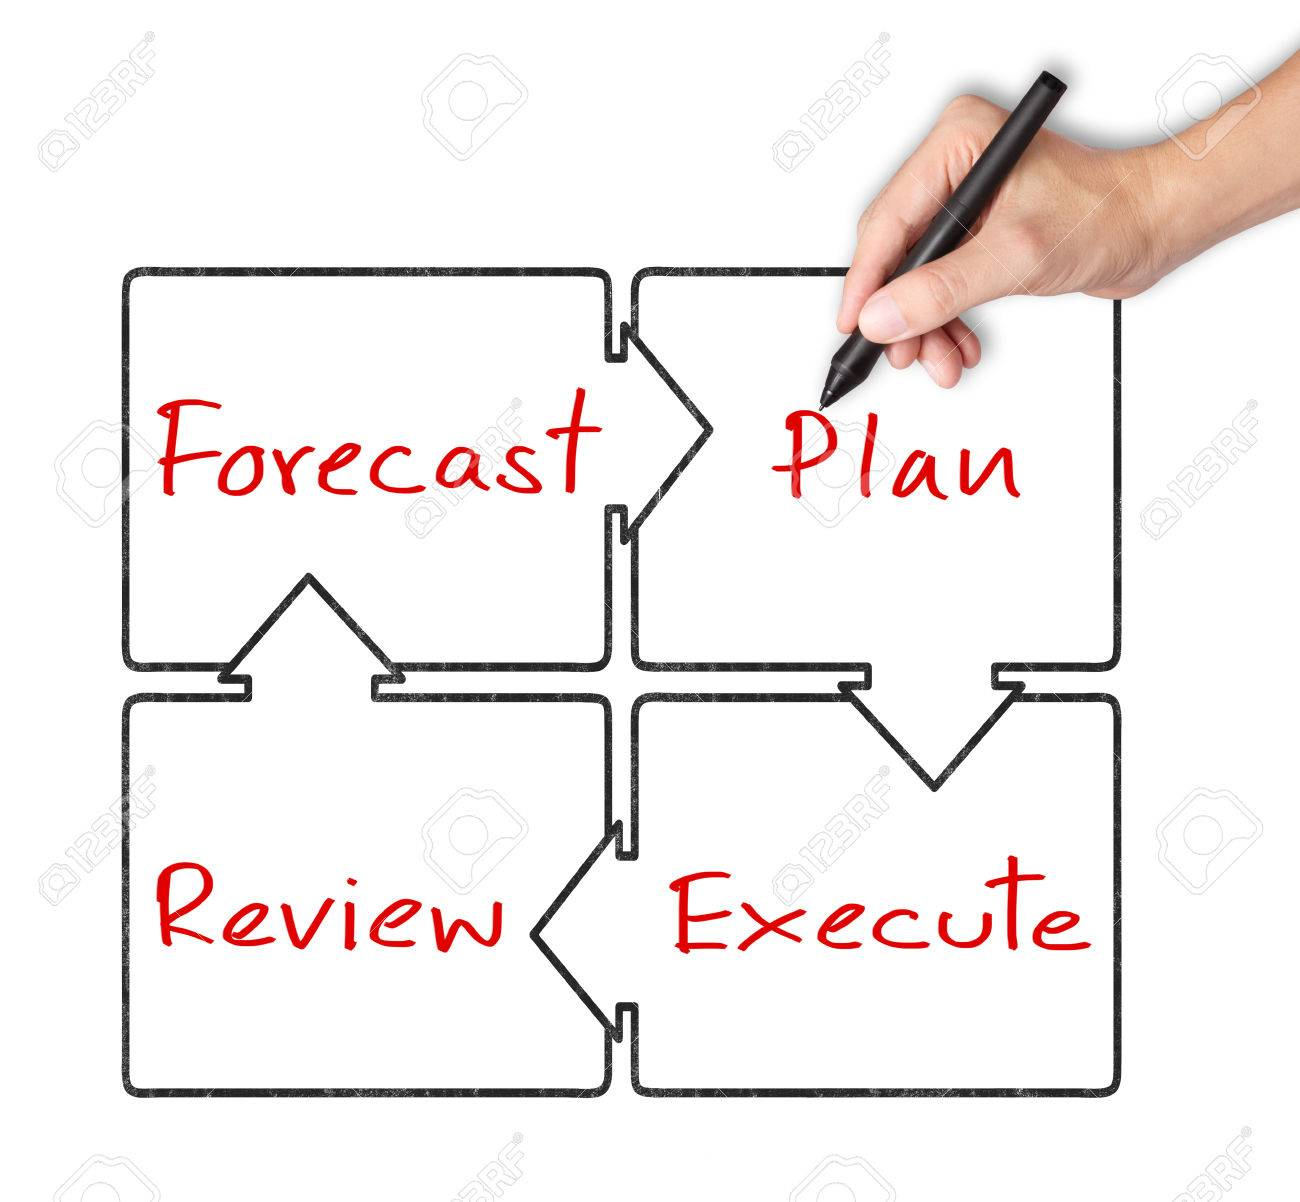 hight resolution of business hand writing diagram of business improvement circle forecast plan review execute stock